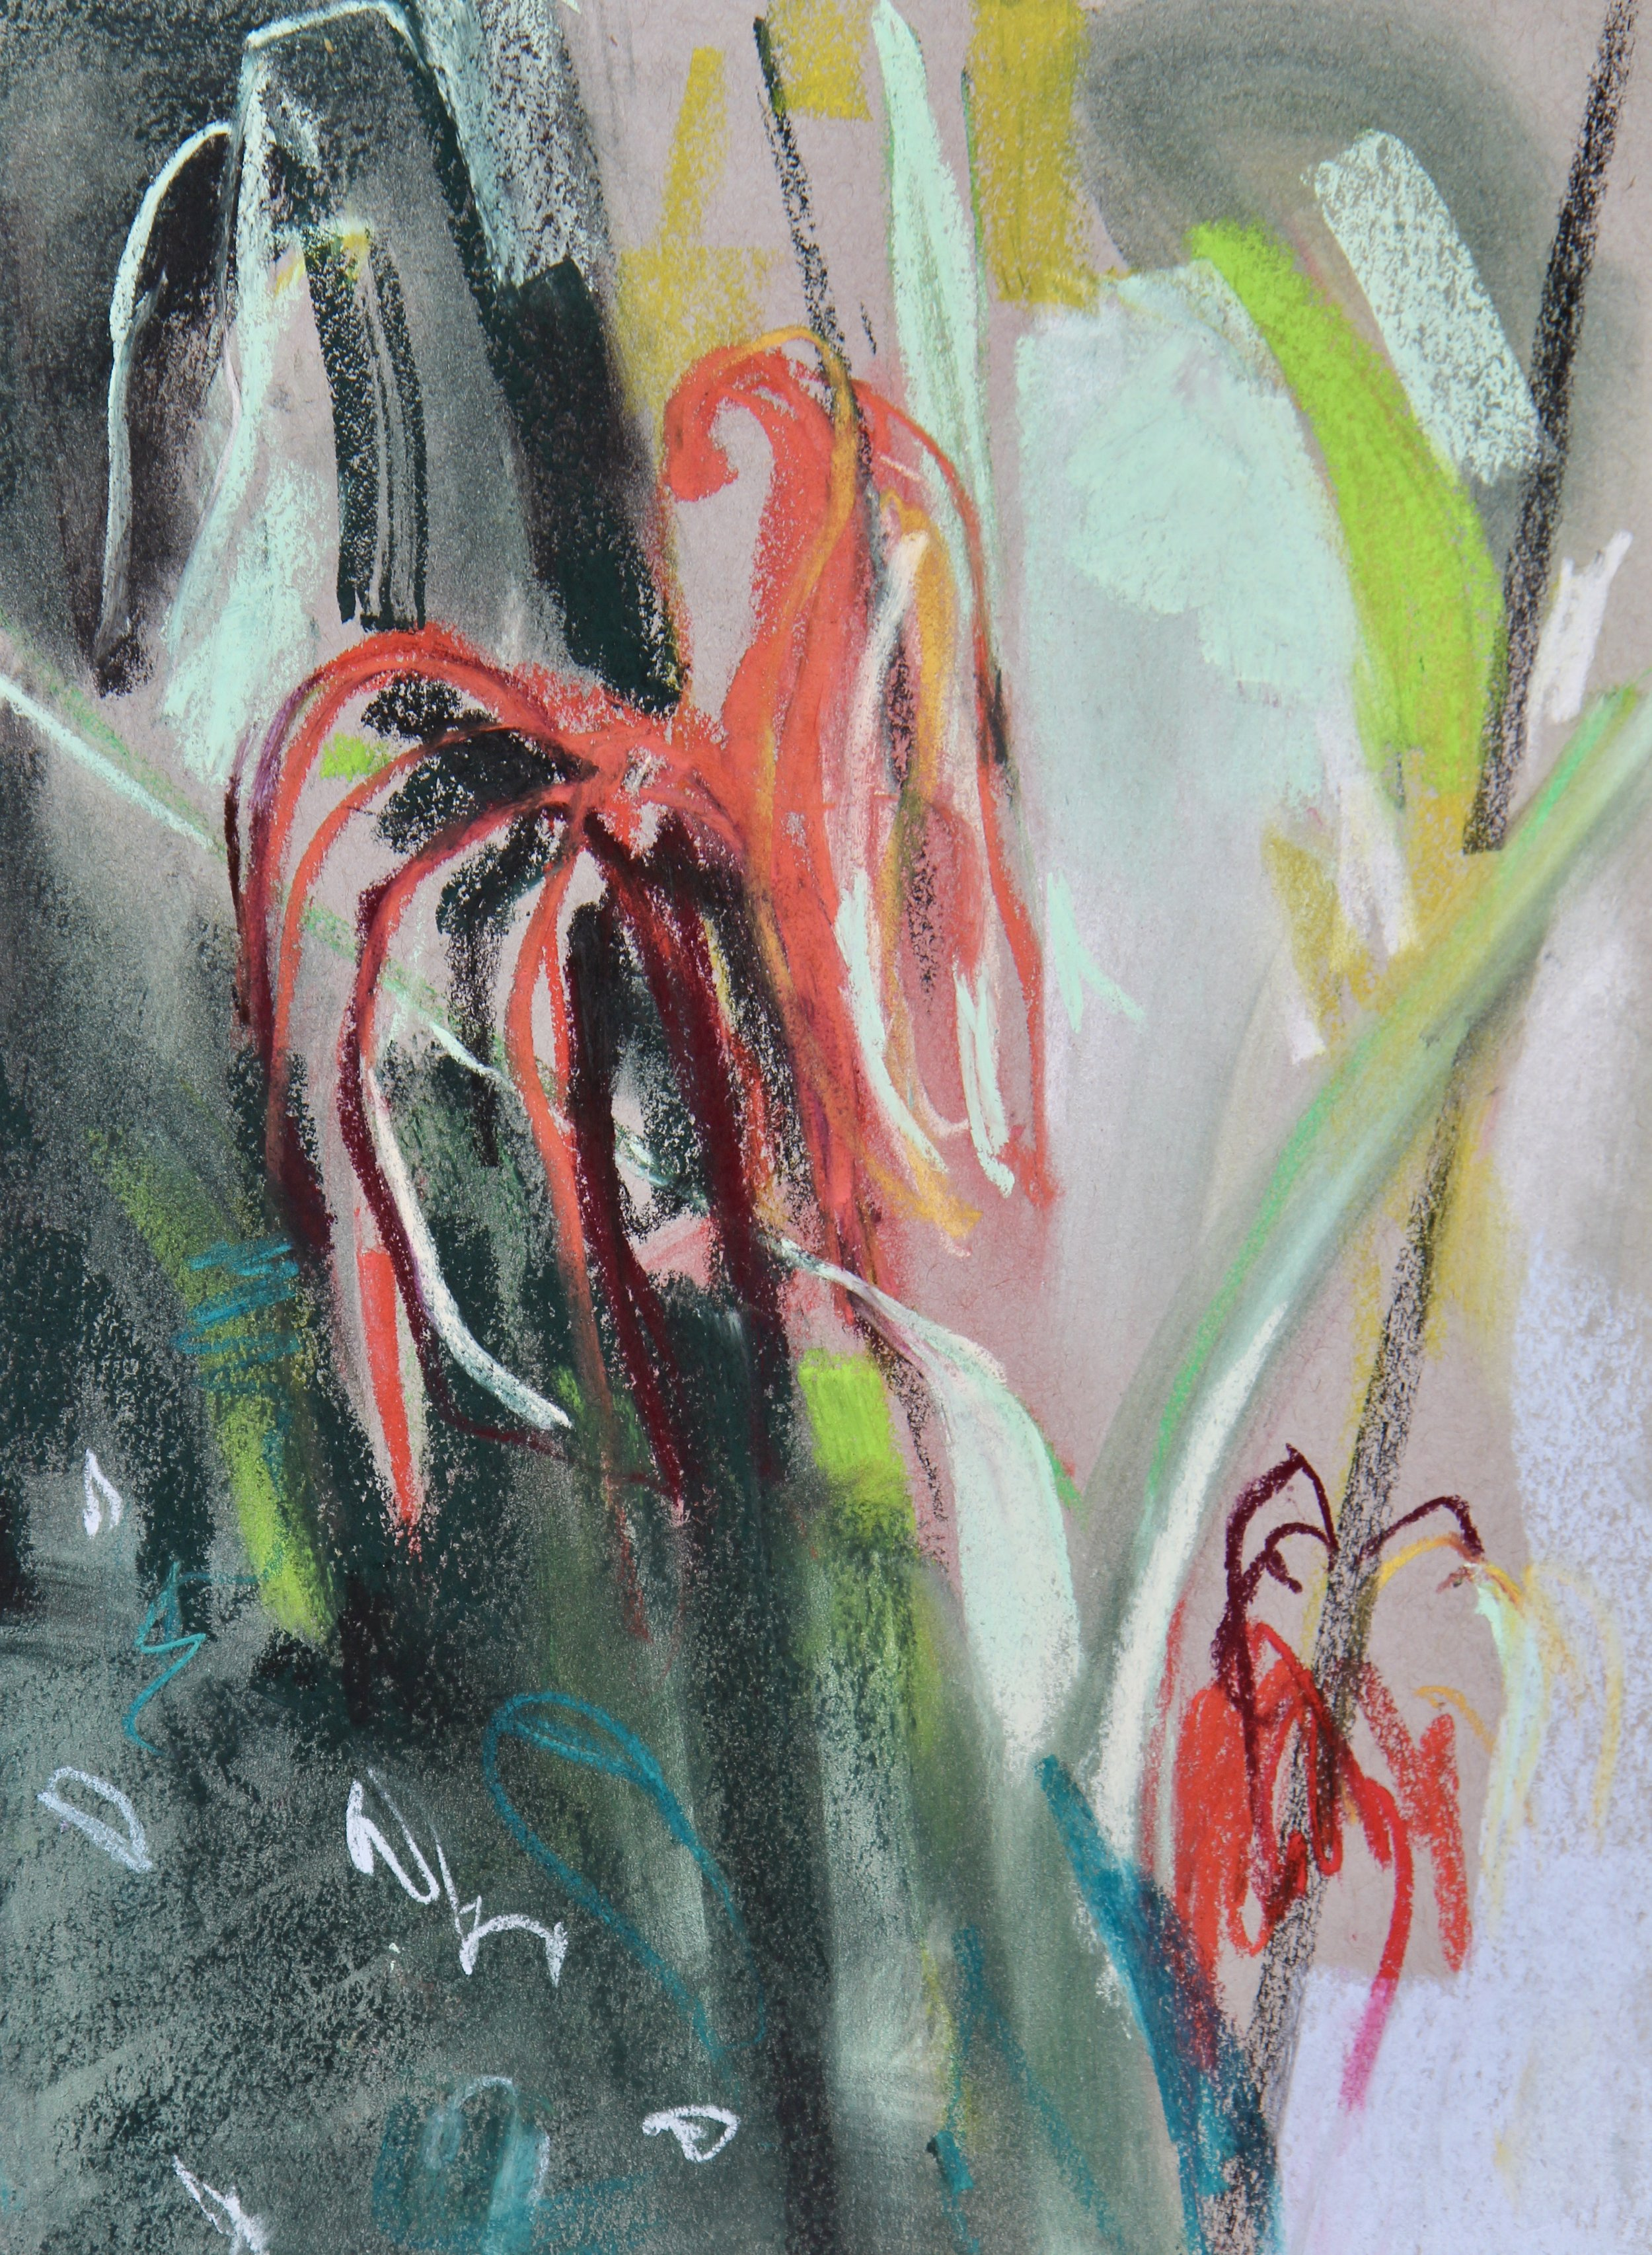 plant study 3 - 21 x 29cm, pastels on grey paper. Mounted on acid-free board £125